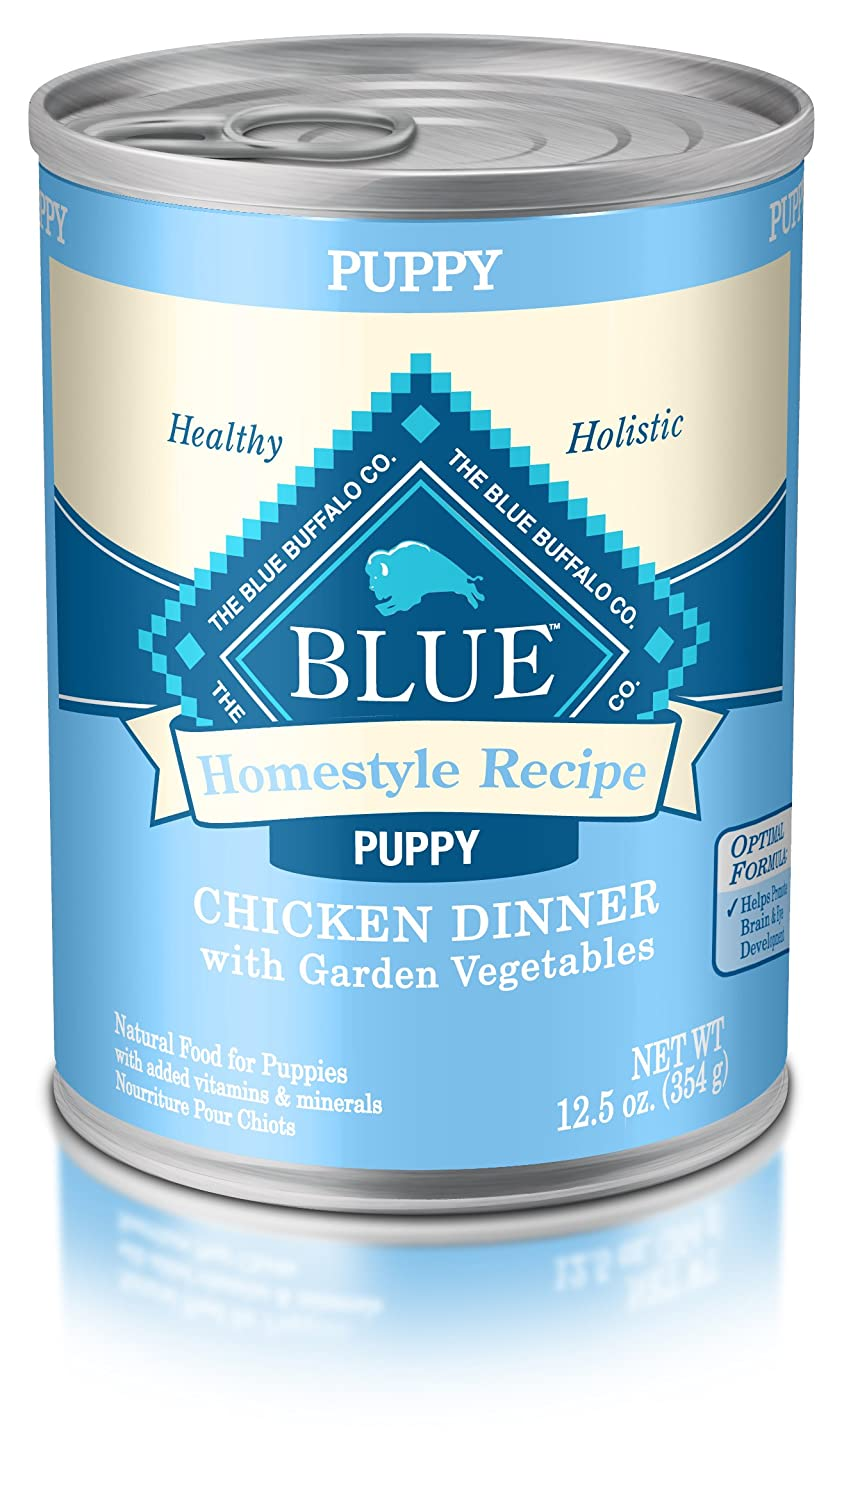 Blue Buffalo Chicken Dinner Puppy Food